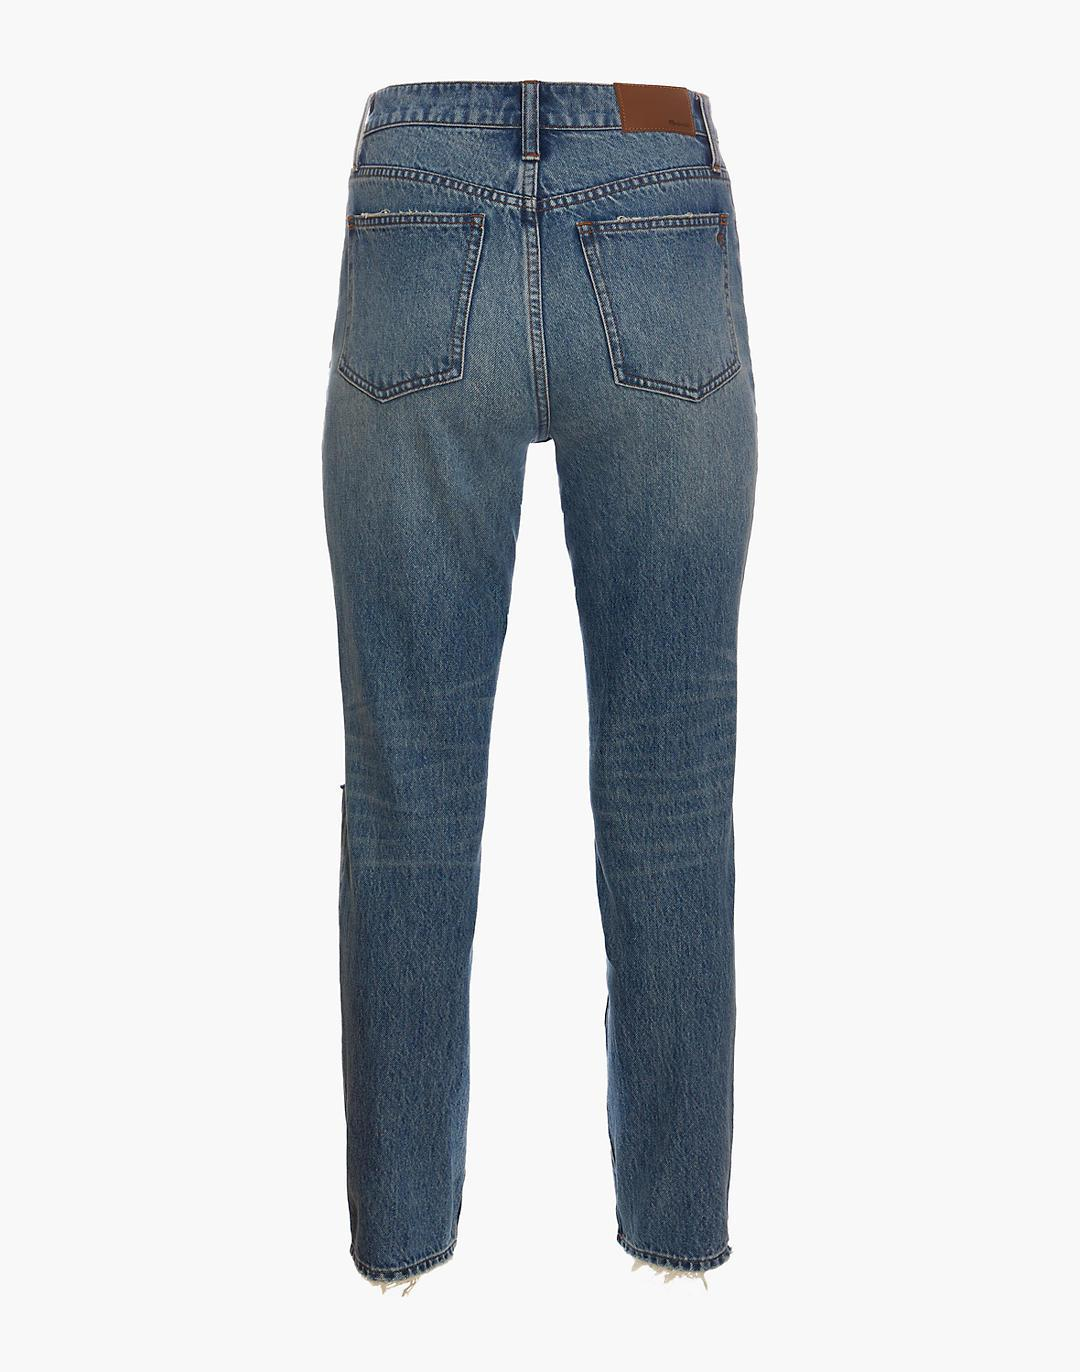 The Perfect Vintage Jean in Phillips Wash: Knee-Rips Edition 4